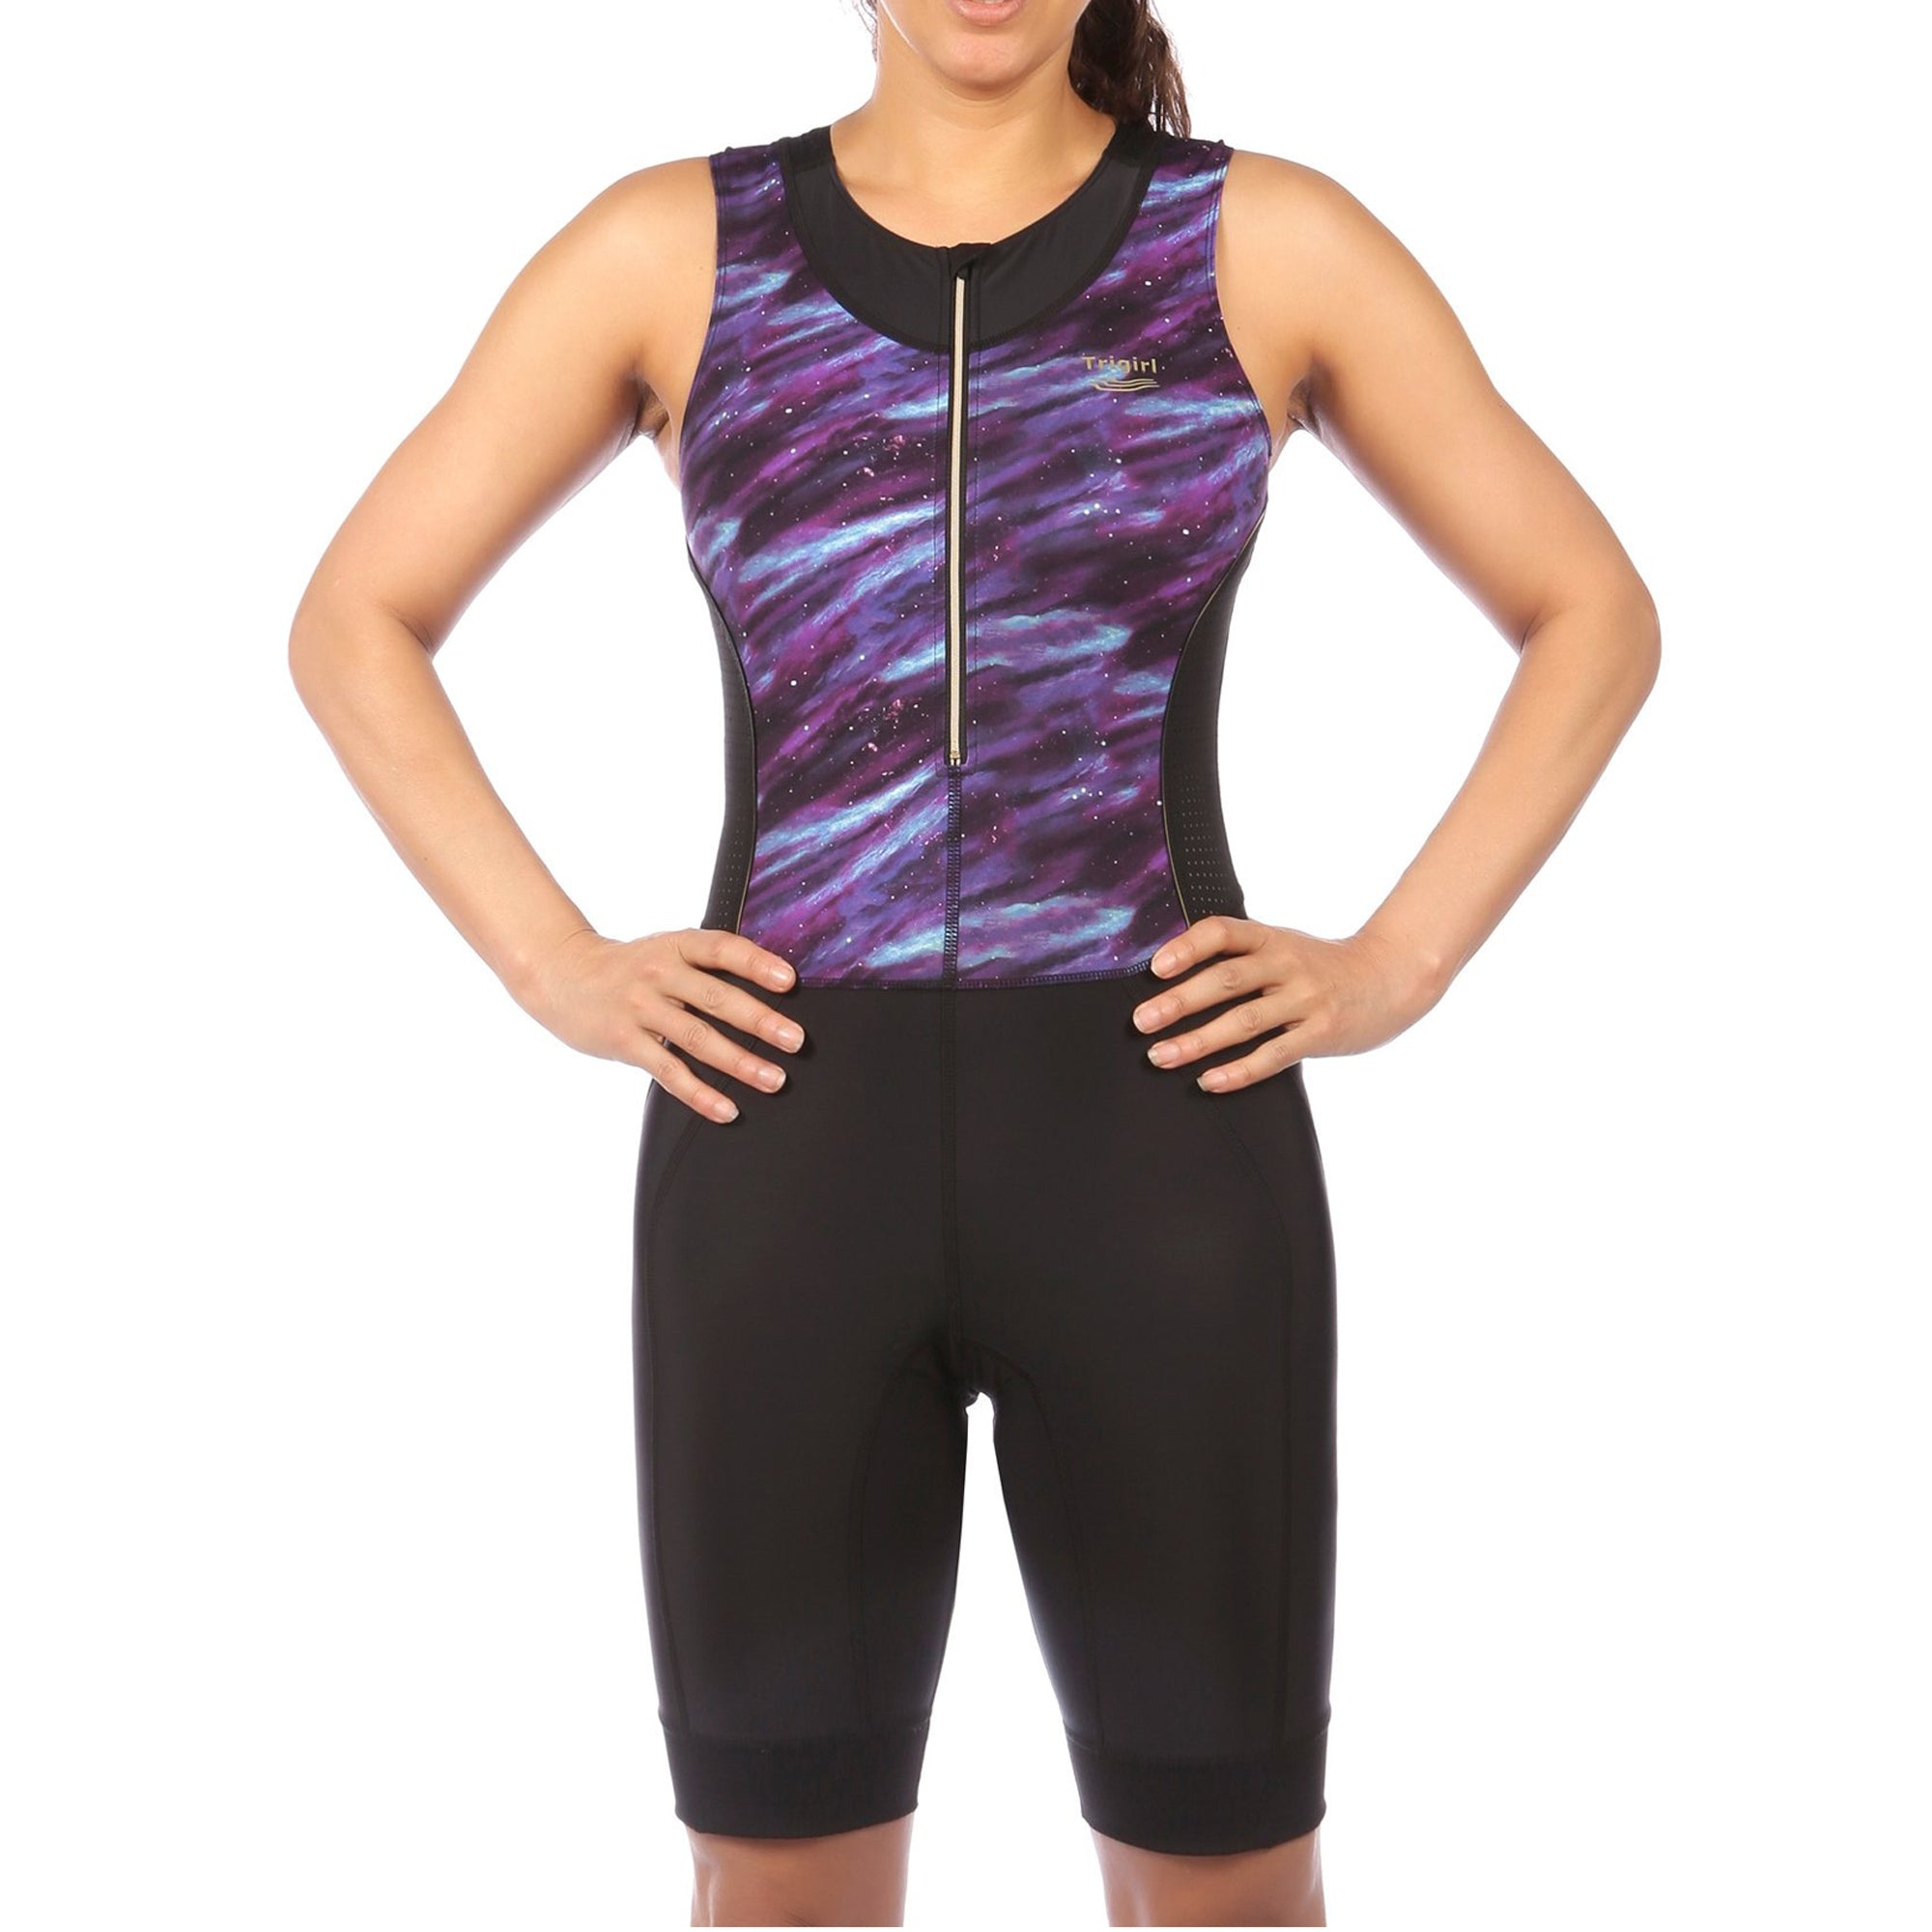 Ritzy Trisuit with Support Bra in Purple Galaxy